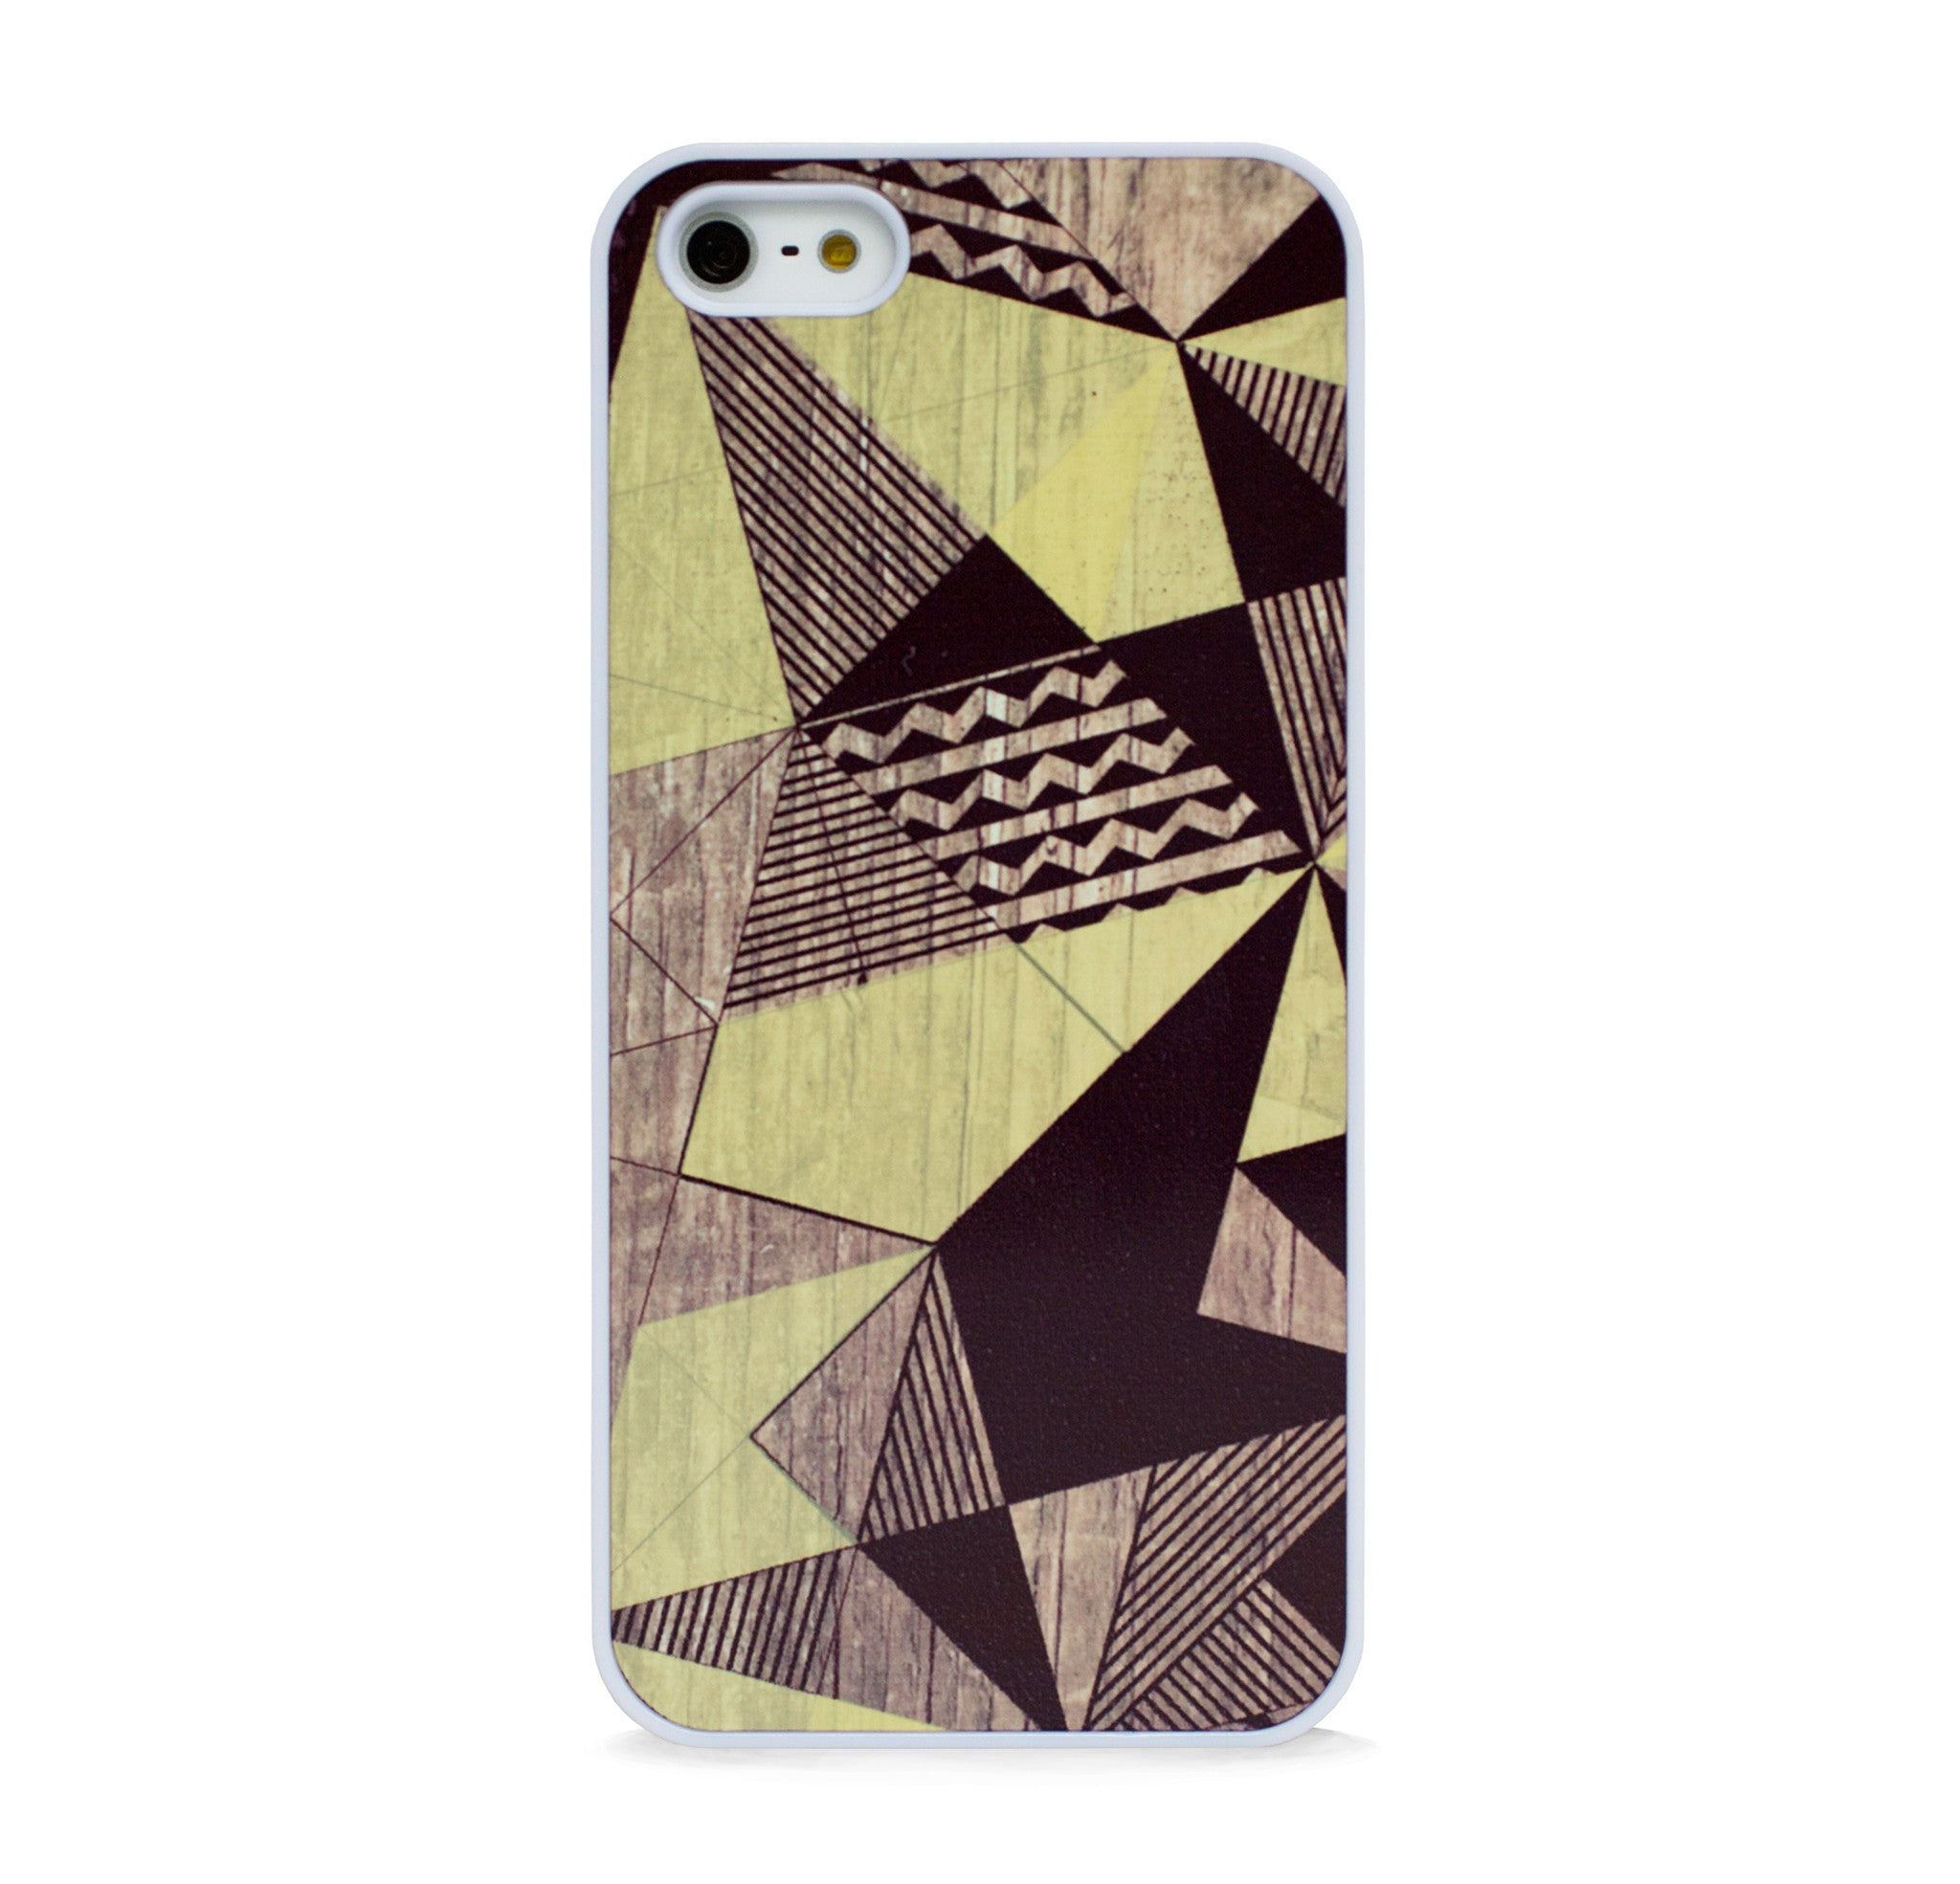 AZTEC MULTI LEMON IPHONE 5/5S CASE